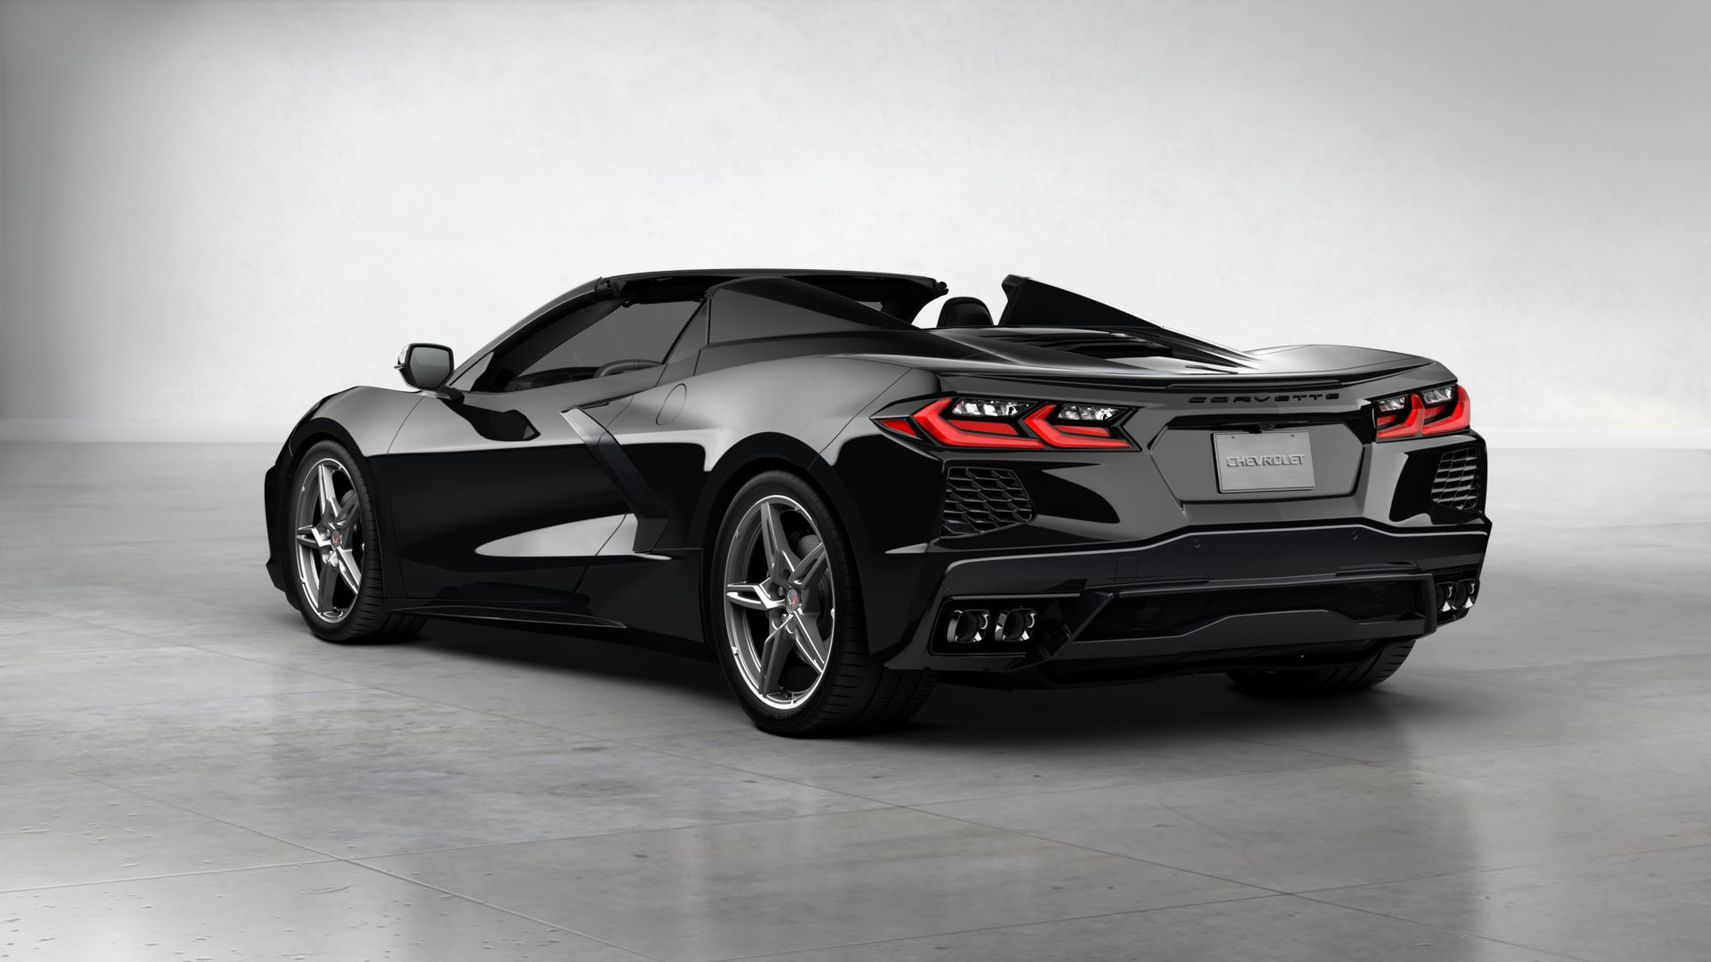 Chevrolet Corvette Stingray 2020 1LT Convertible